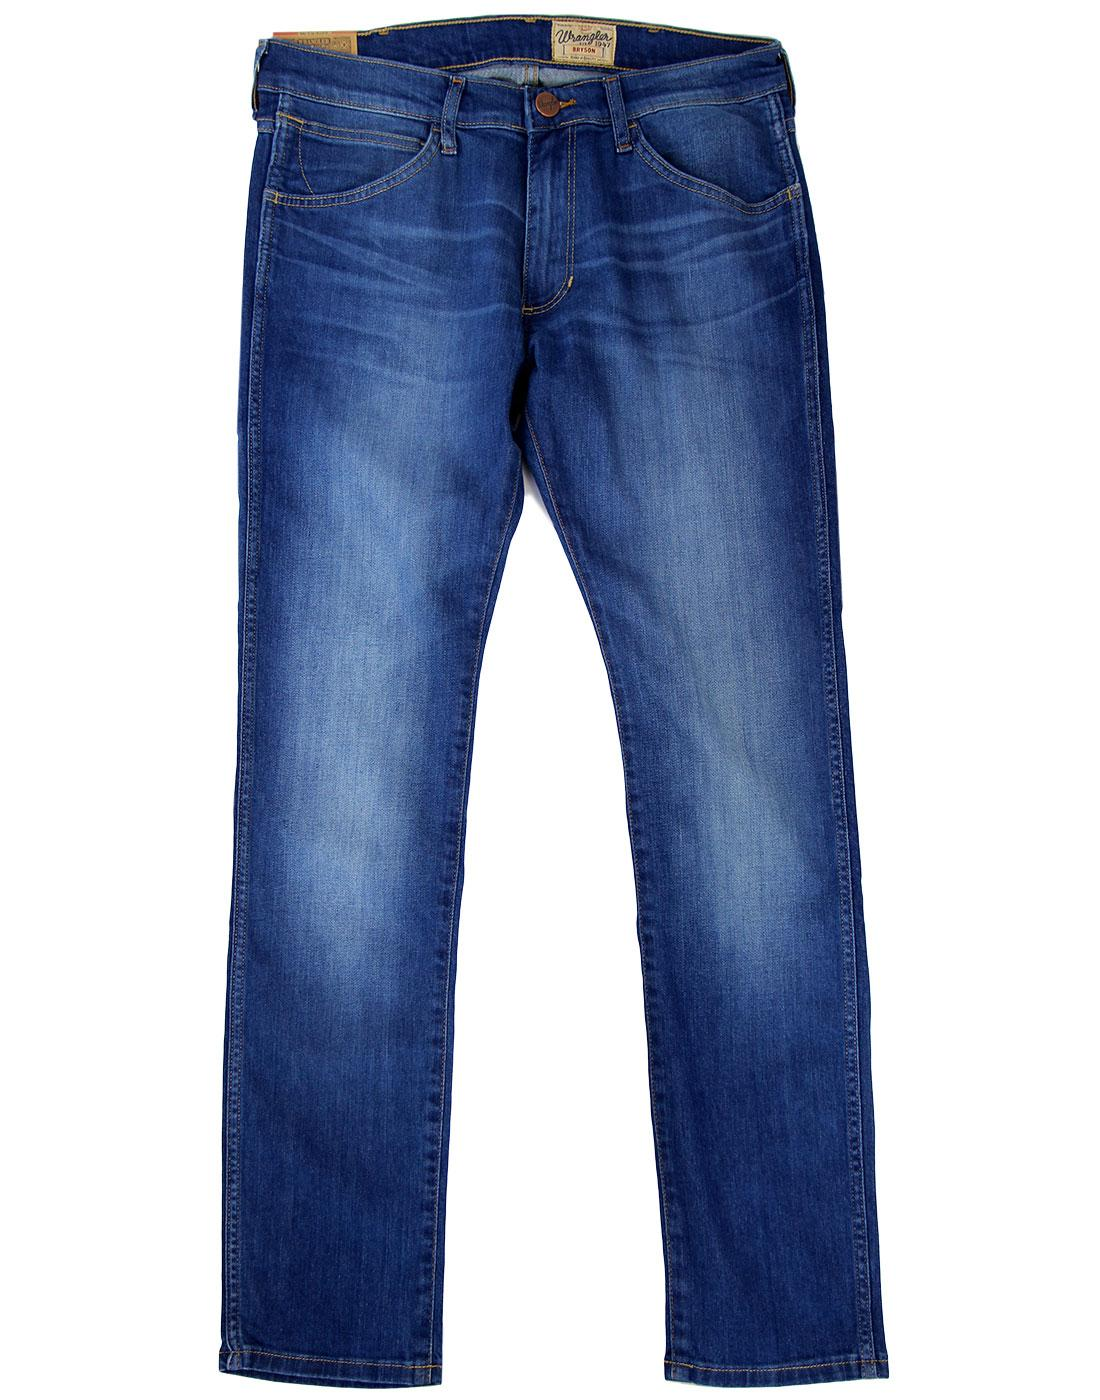 Bryson WRANGLER Blue Bream Super Skinny Jeans